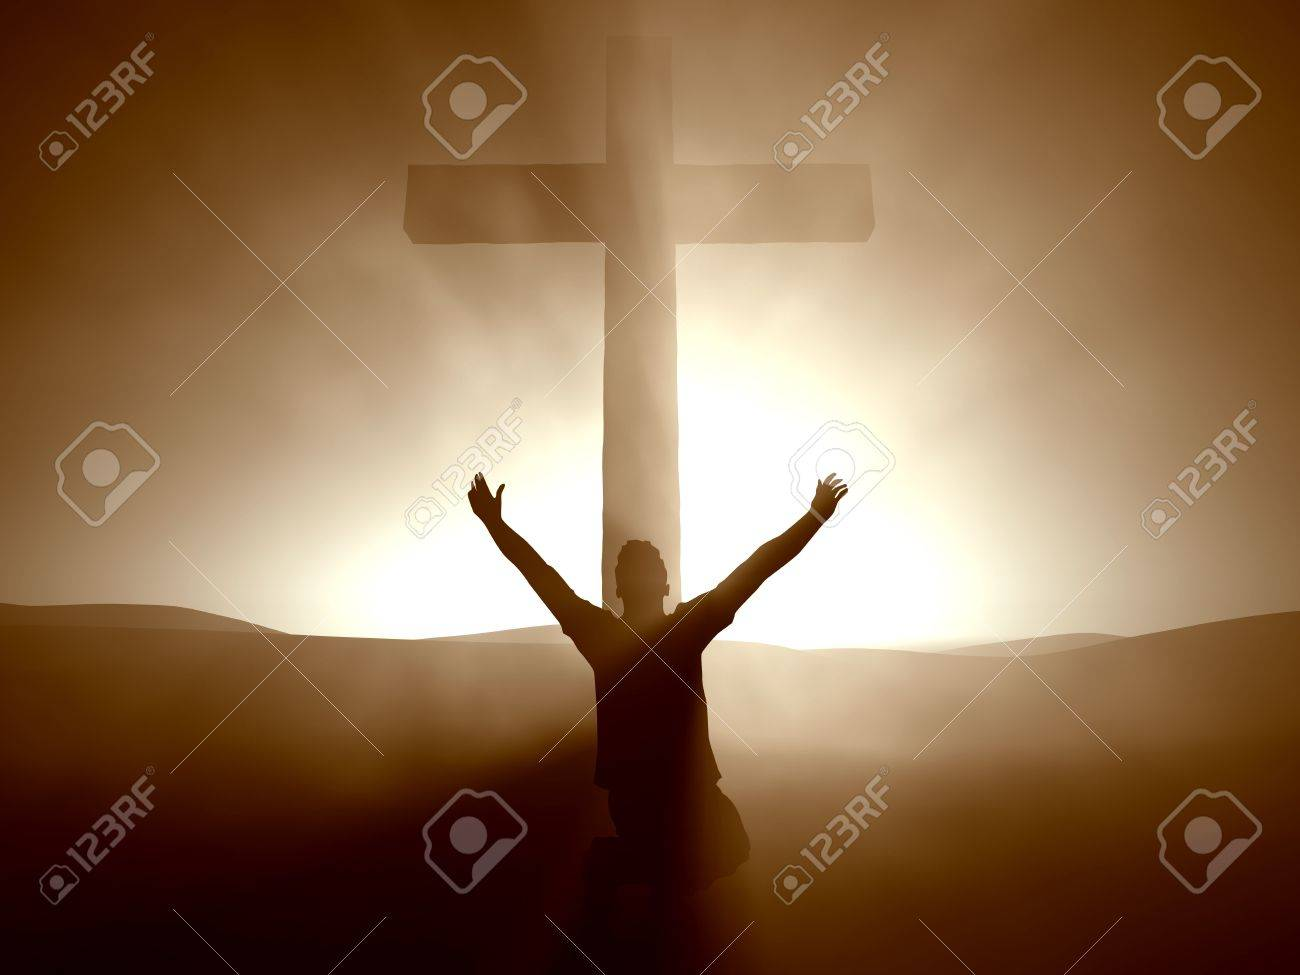 Silhouette of a man at the Cross of Jesus. - 7150677